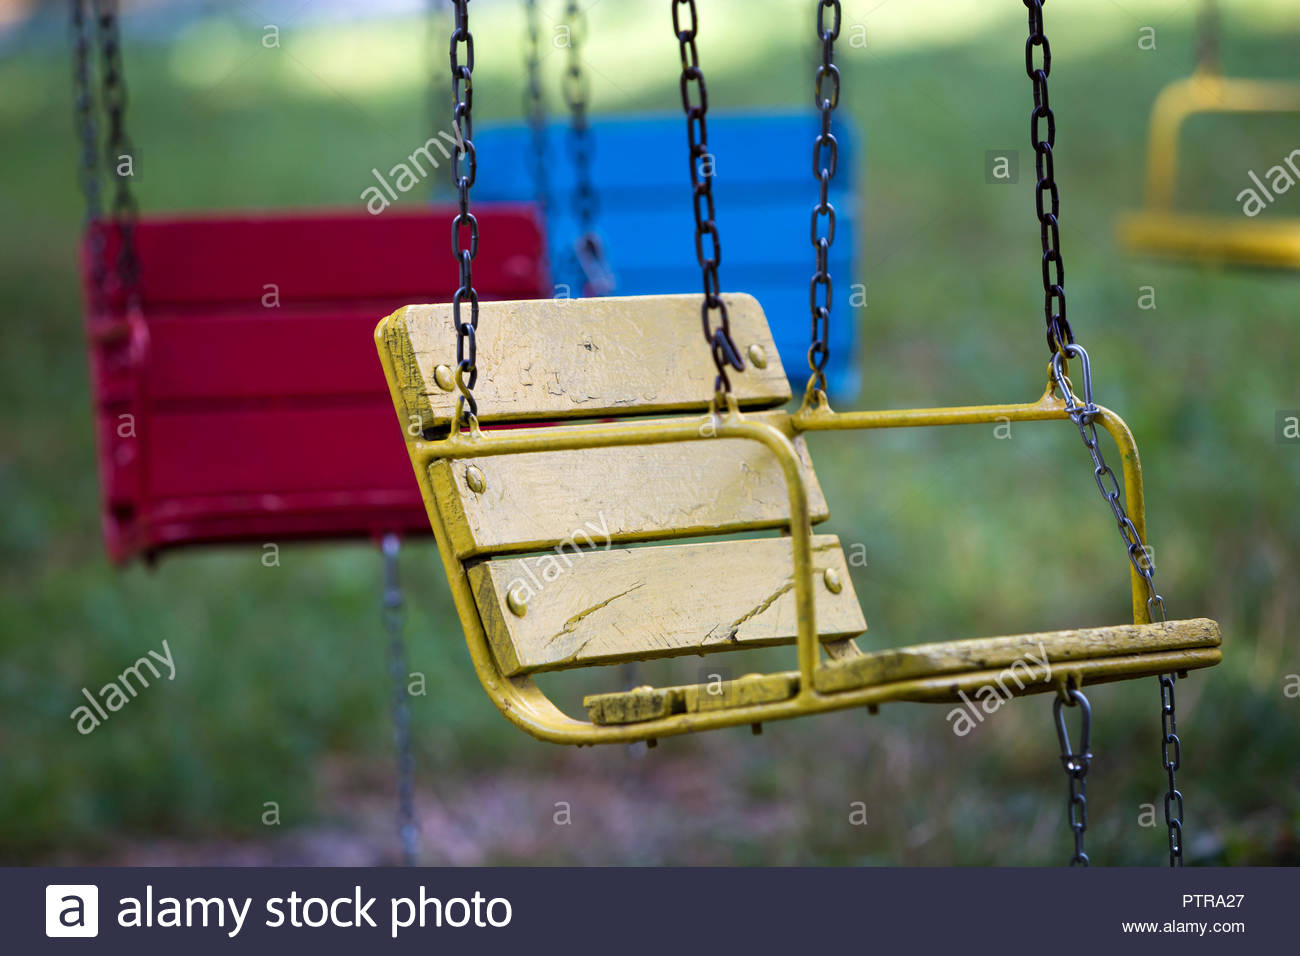 Close Up Empty Chain Swing Seats Stock Photos & Close Up Regarding Swing Seats With Chains (View 9 of 25)